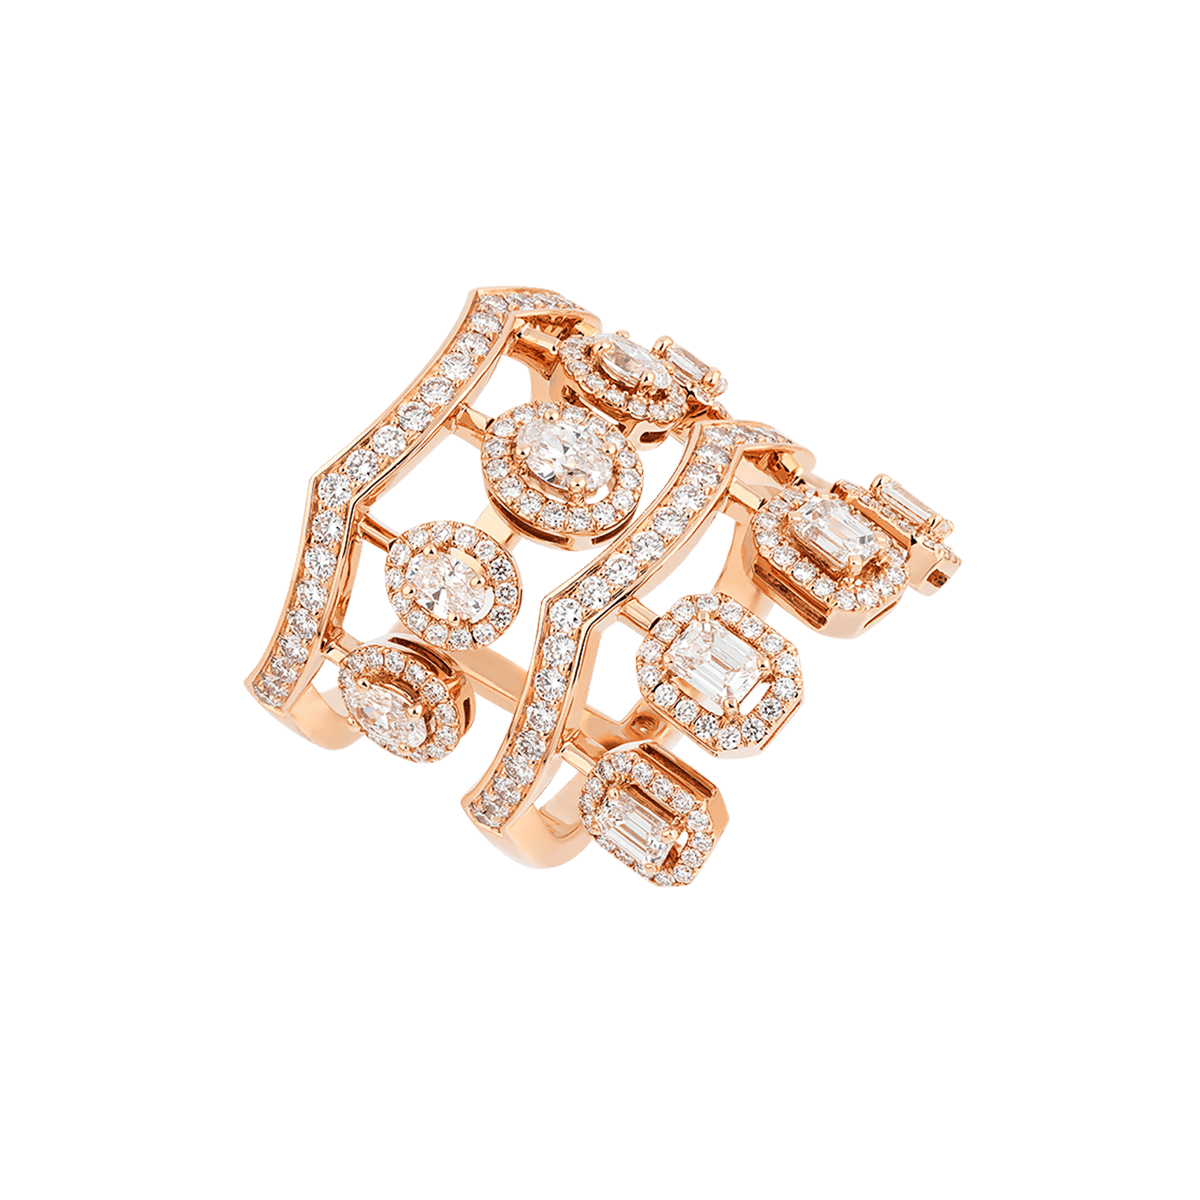 ariana rose gold ring with diamonds